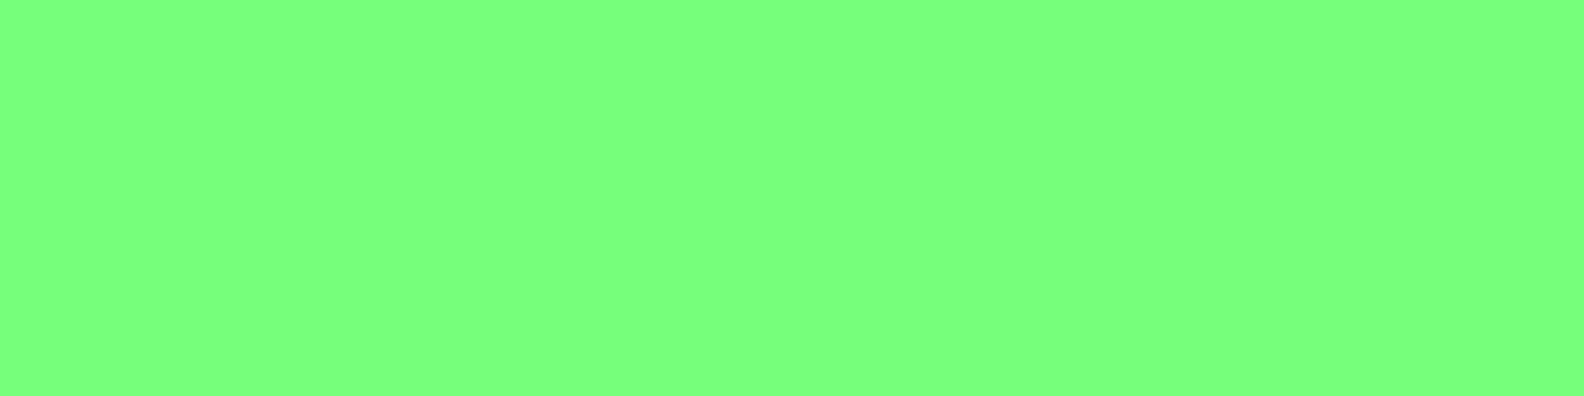 1584x396 Screamin Green Solid Color Background